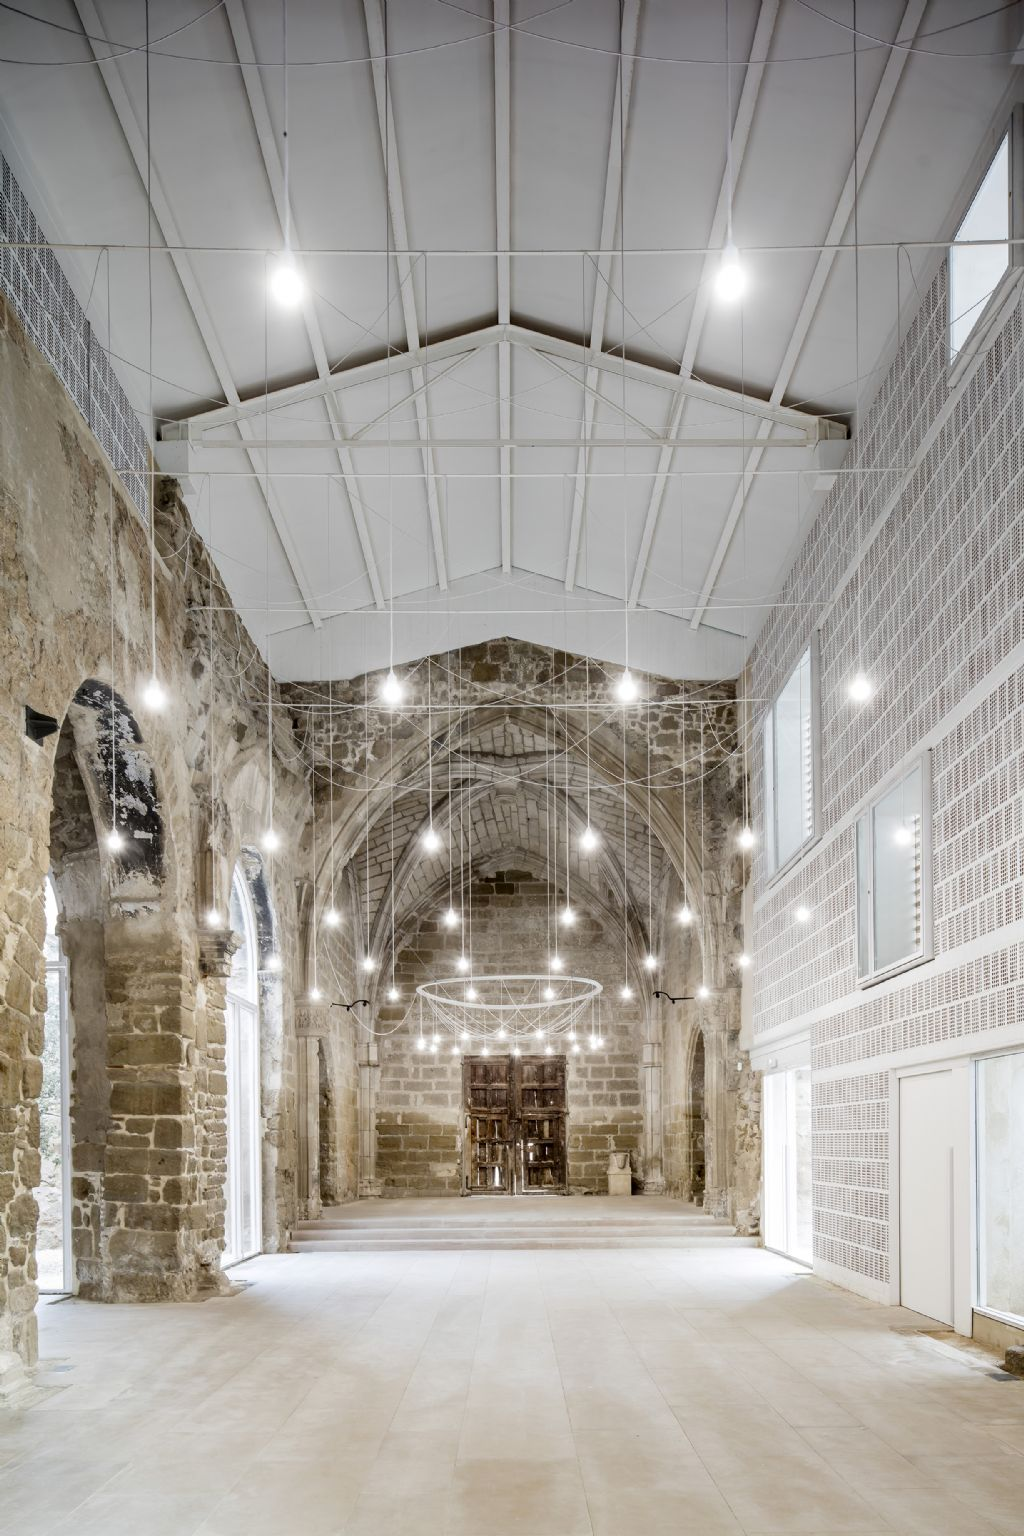 Special Prize Winner: The Old Church of Vilanova de la Barca – Category Building outside the box - AleaOlea architecture & landscape, Spain